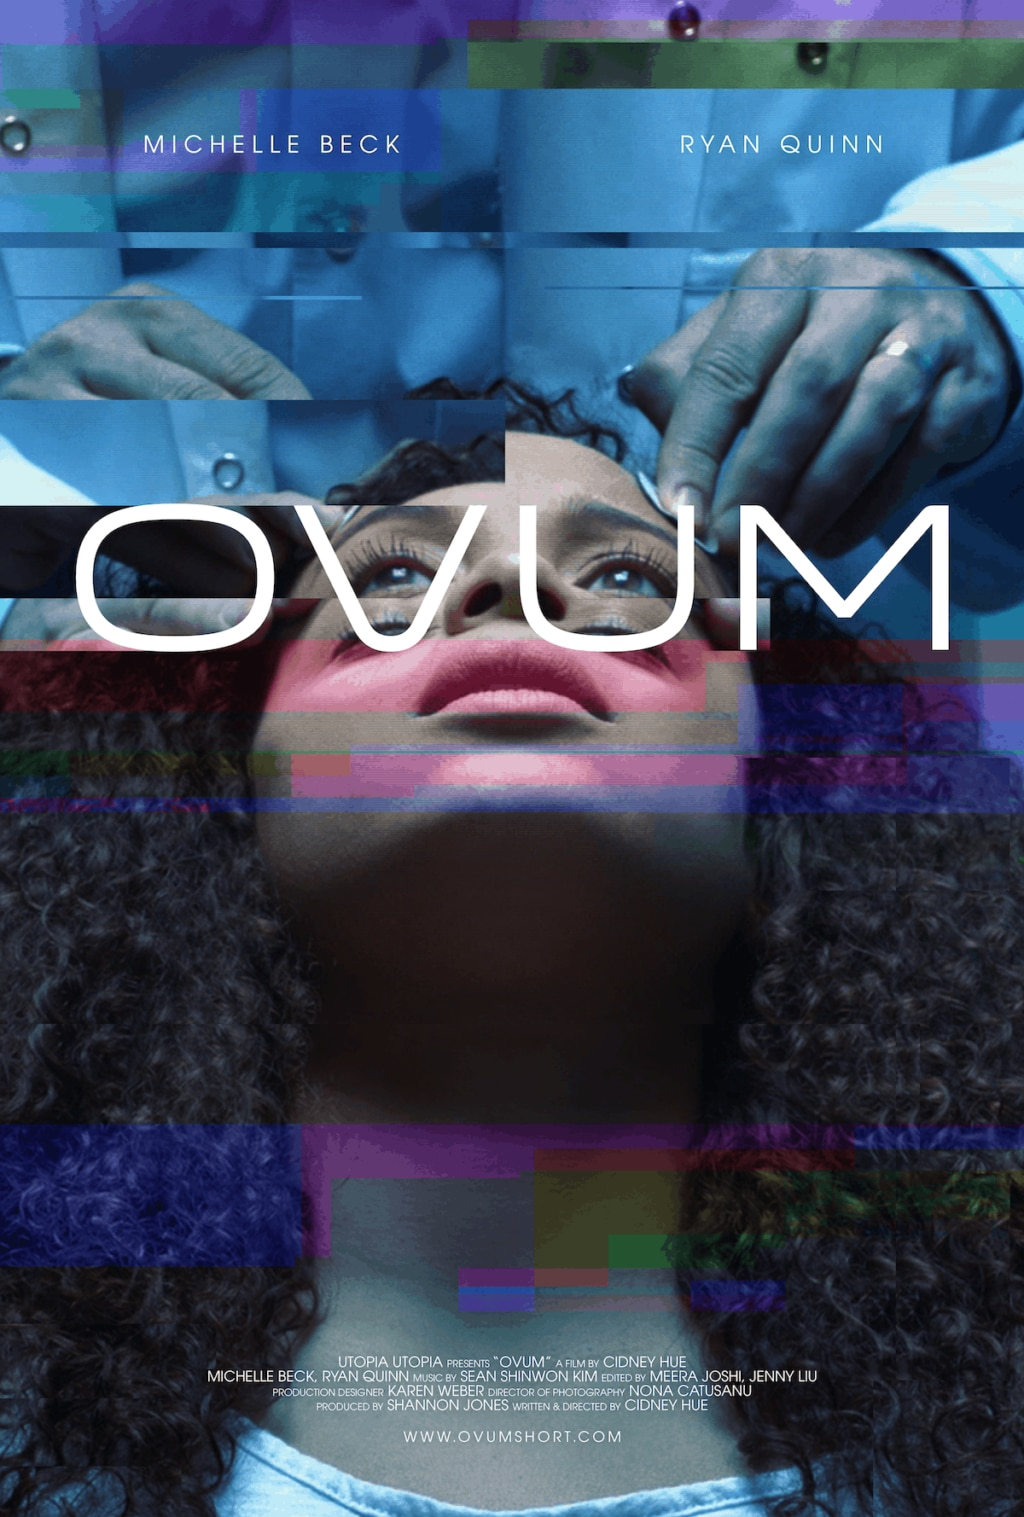 ovumposter 1024x1517 - Exclusive: Check Out This Glitchy OVUM Poster Ahead Of Its Premiere